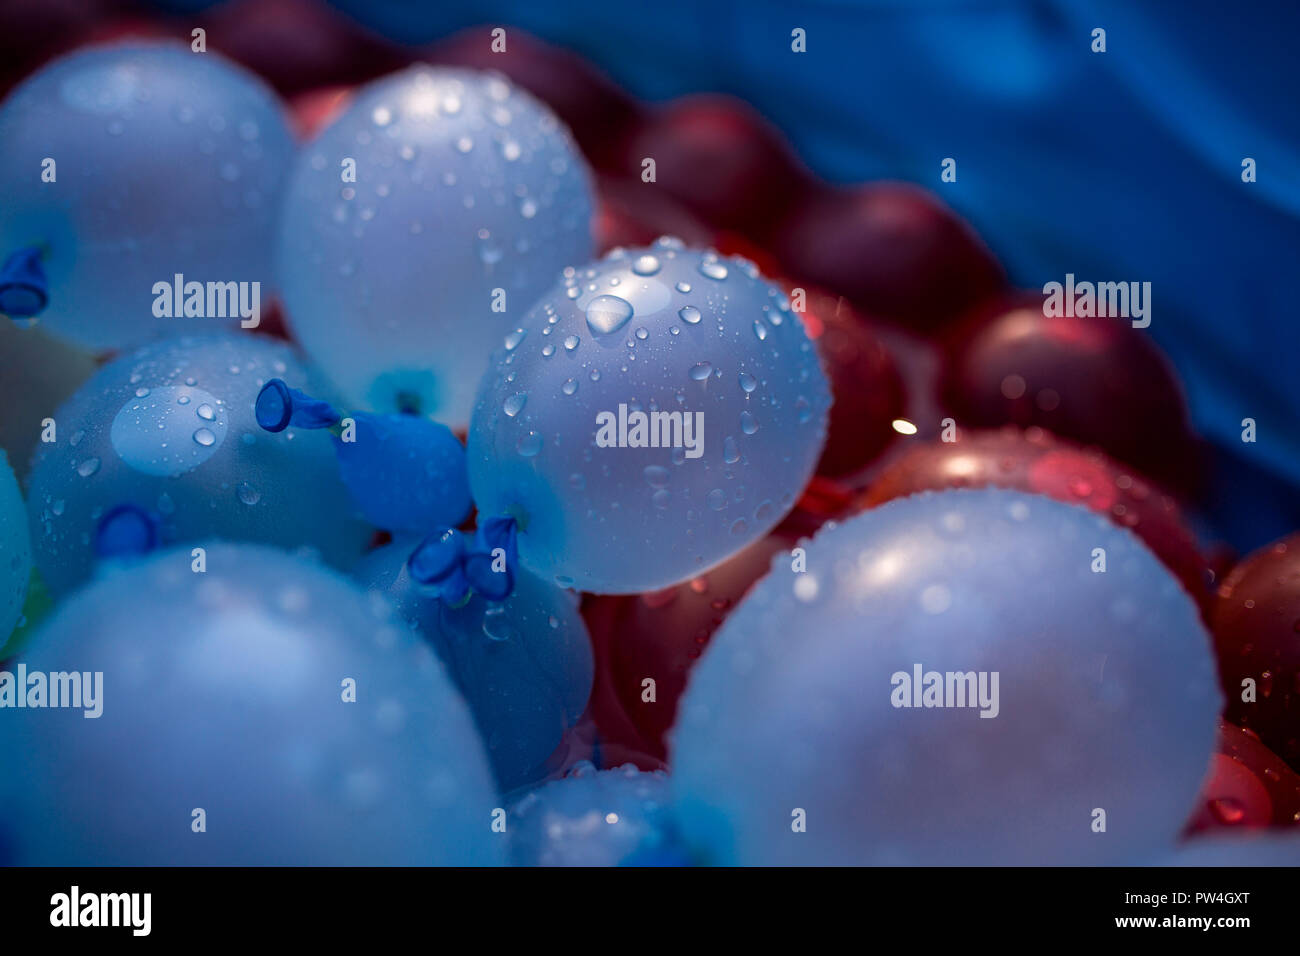 Close-up of water bombs in bucket - Stock Image